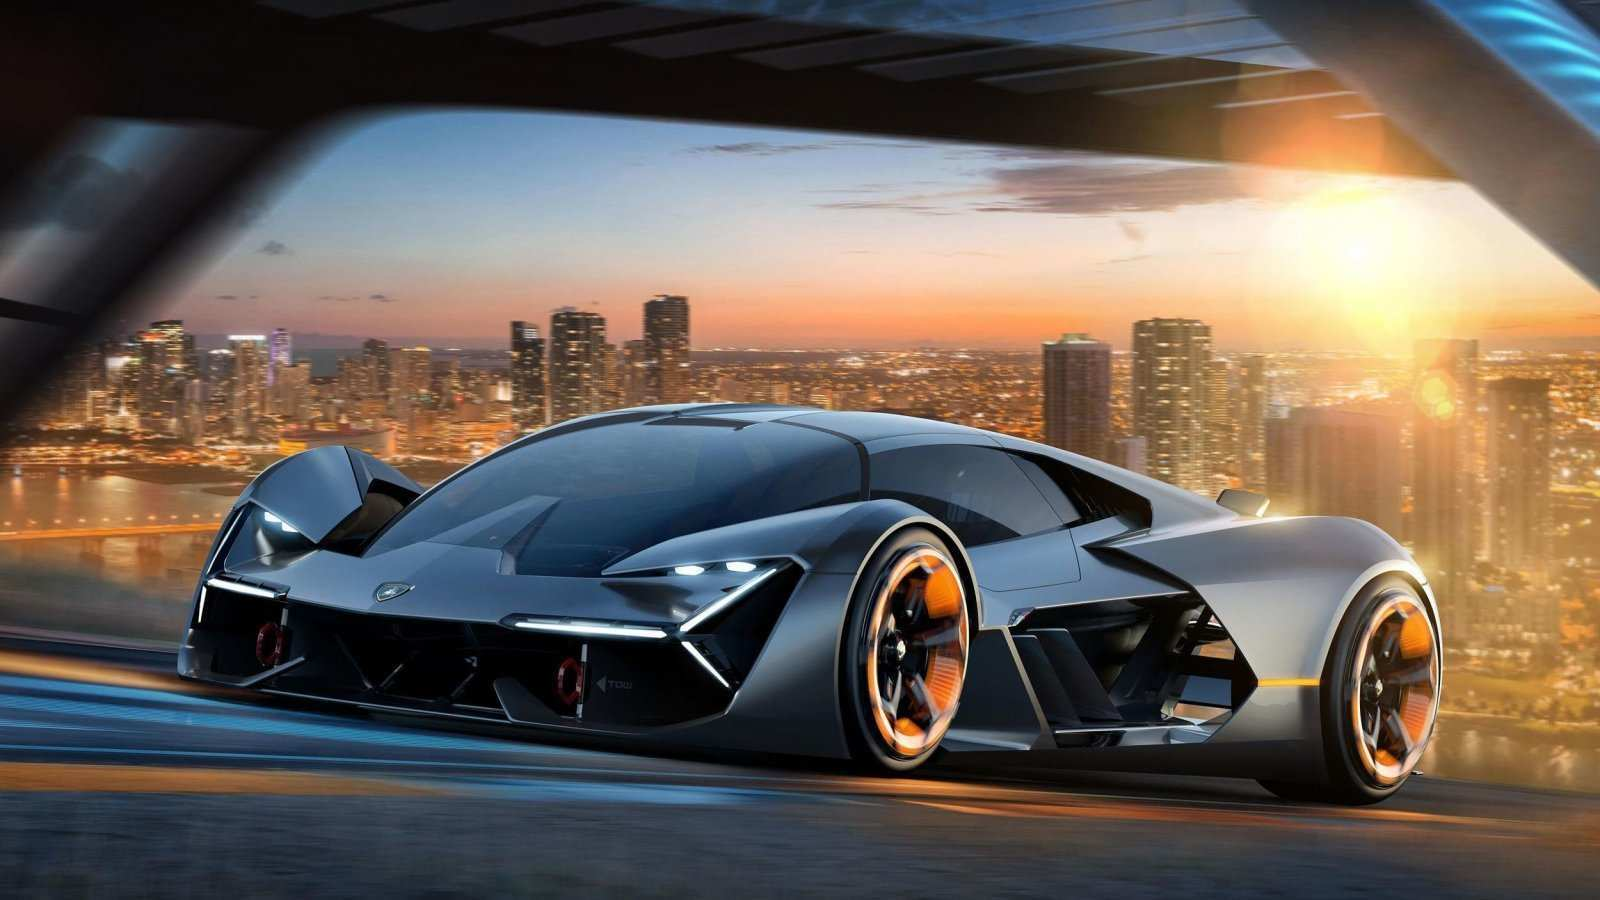 91 All New Lamborghini 2020 Models Exterior And Interior